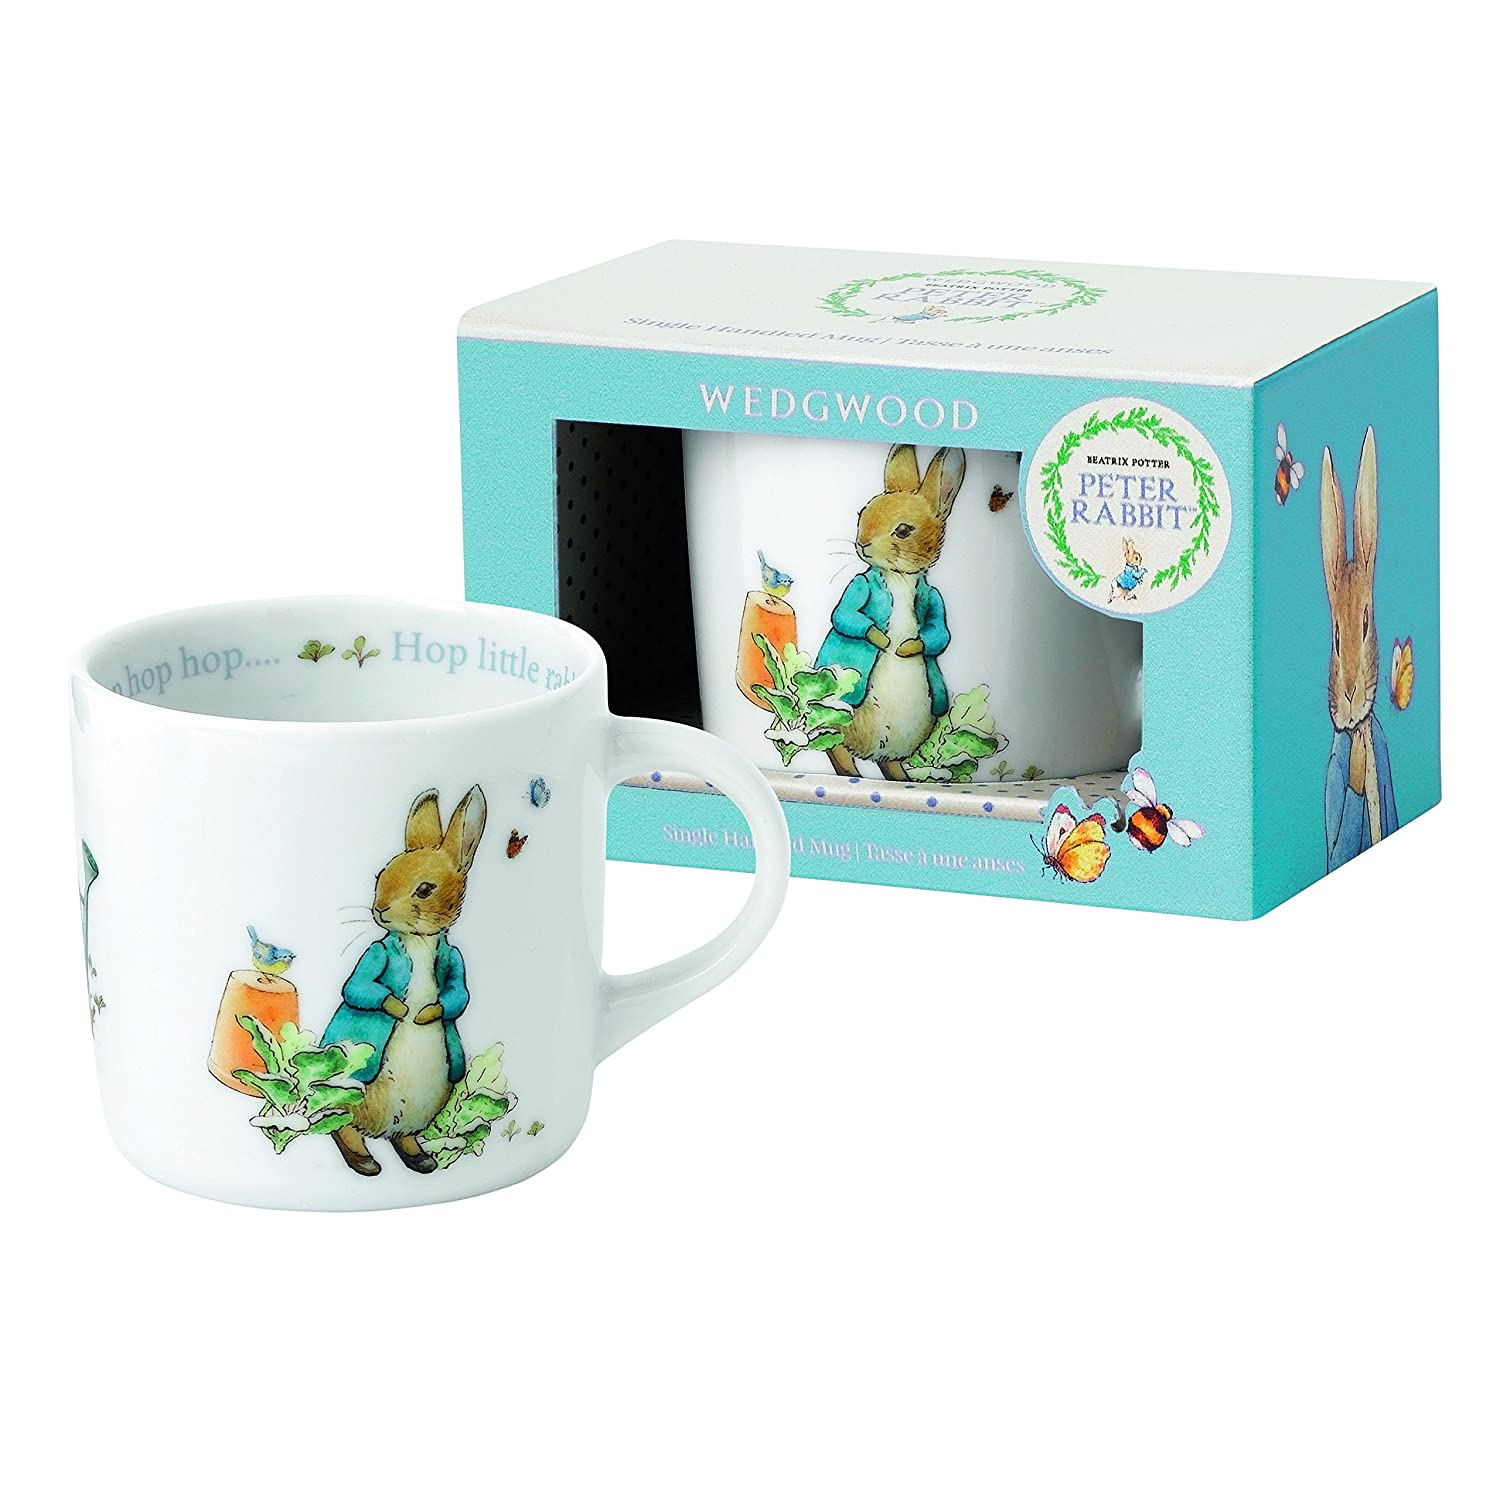 Wedgwood Boy's Peter Rabbit 2-Piece Bowl and Mug Set, White and Blue 58988200262